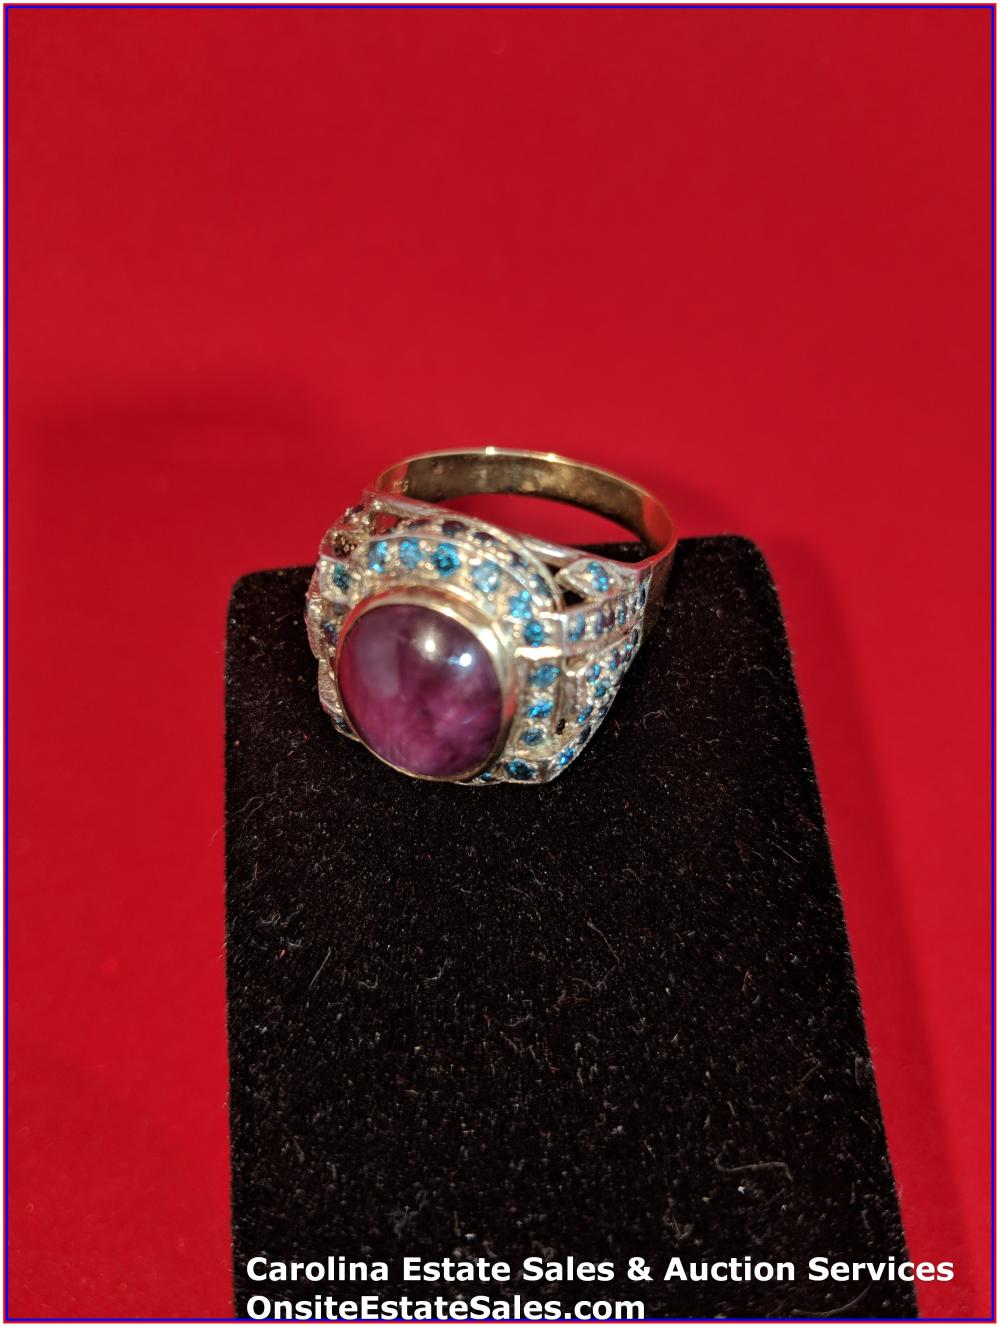 18K/925 Gold & Sterling Gem Ring Gold 12 Grams Total Weight; Center Stone Ruby Star Sapphire Surround by Natural Blue Diamonds